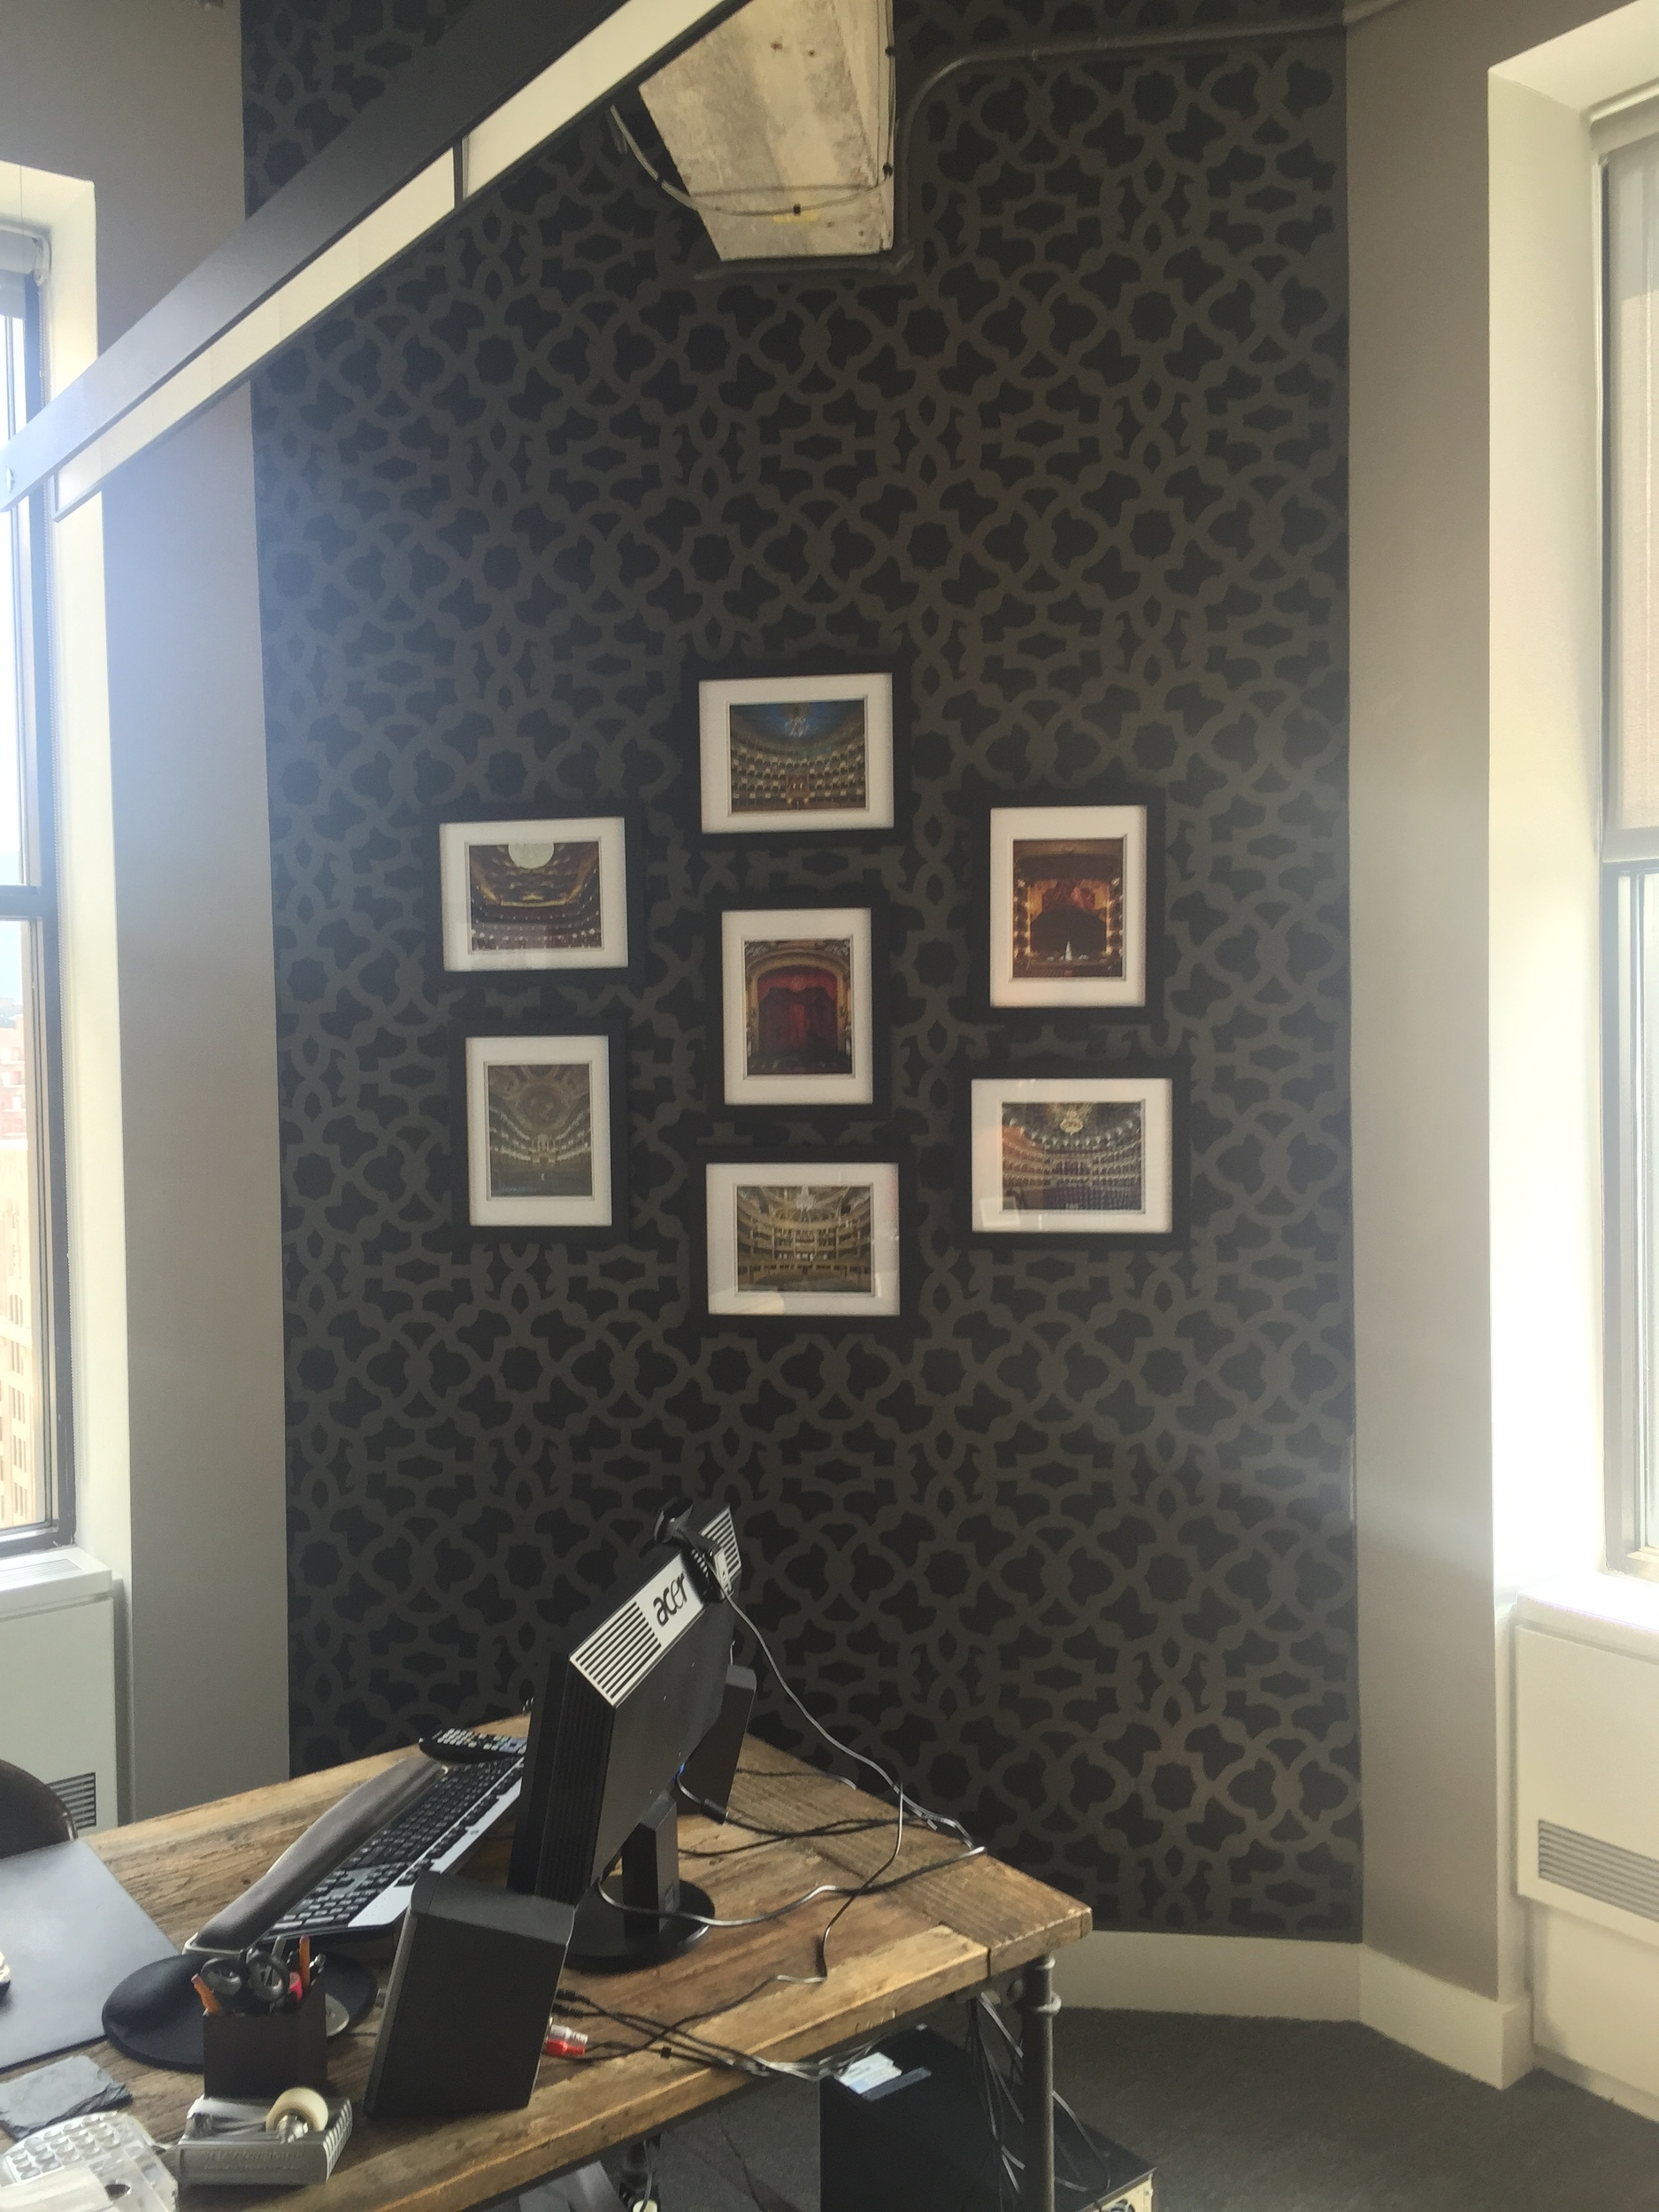 Stencils also create interesting palates for displaying art work or gallery walls. Here, we brought the eye to the high ceilings and created a real focal point for this masculine corner office.